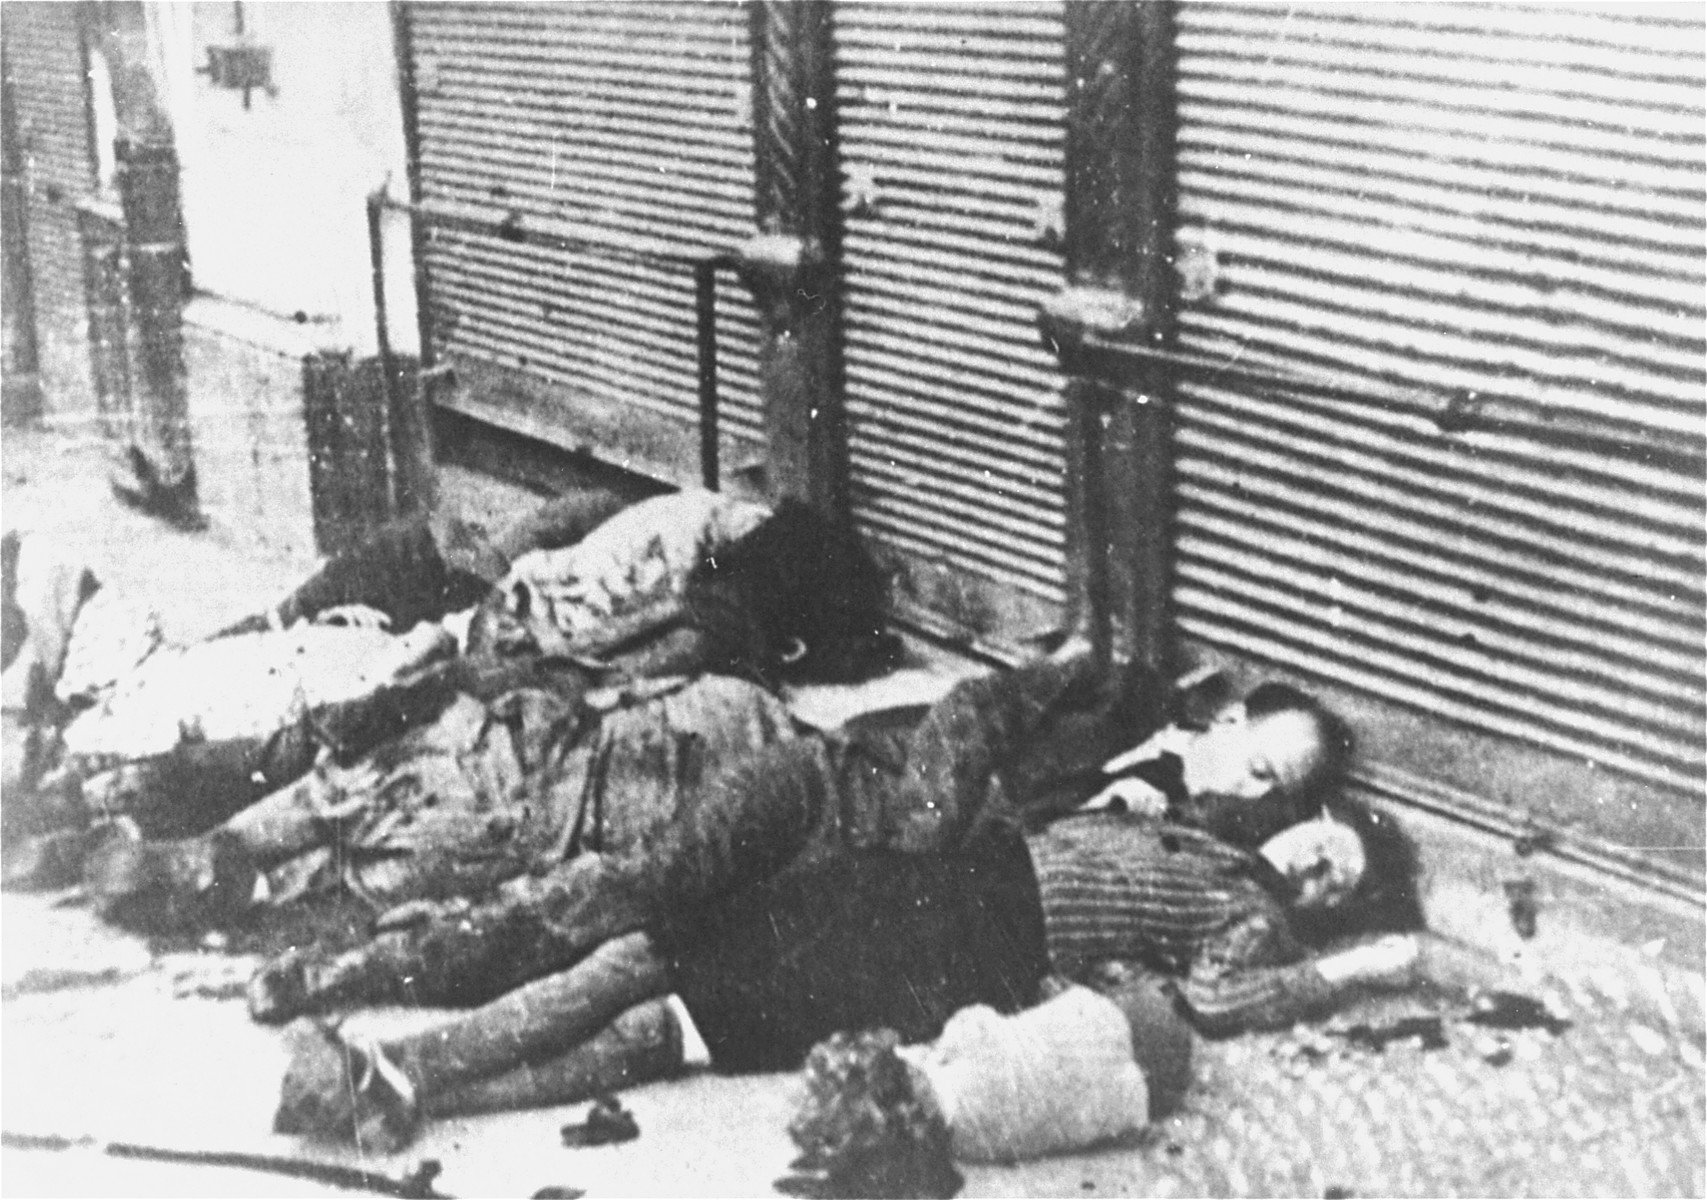 The bodies of a Jewish family killed on Vasile Conta Street in front of the Fratii Hirschenschon store during the Iasi pogrom.   On June 30, 1941, around 1:30 PM, some eighteen bodies were brought [from the building where the Adace pharmacy is situated]...among them the Kunovicis, who owned the milliner's shop on Stefan cel Mare Street; Simion Filip, the baker on I.C Bratianu Street; Nacht, the engineer from the Adace building; and the former bar owner Mille. Pictured here is one of the 180 children murdered in the progrom.